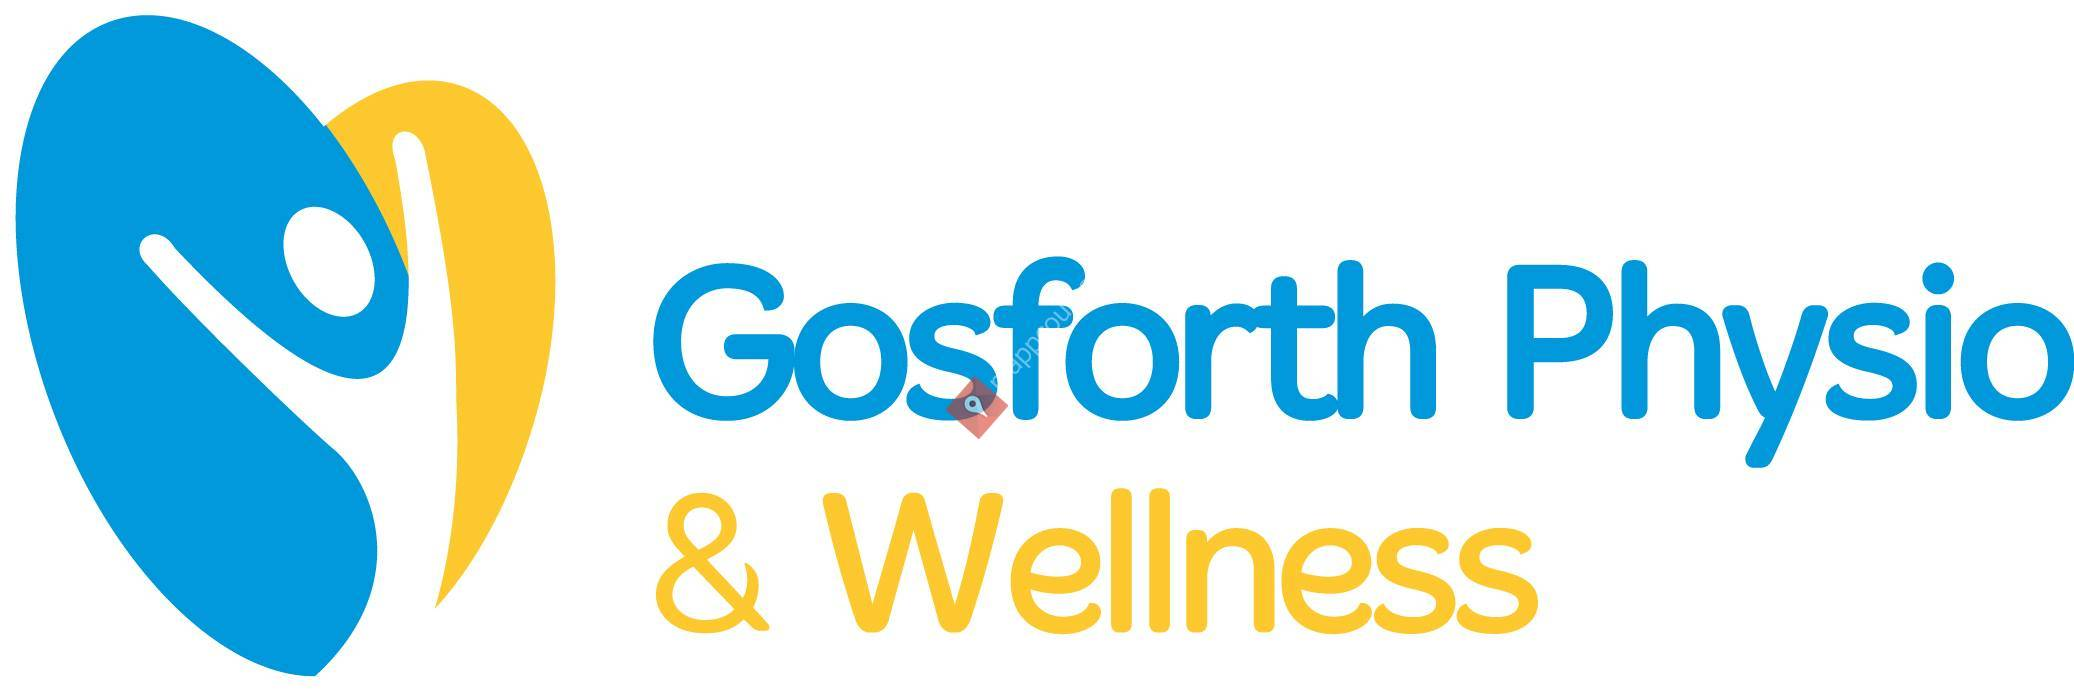 Gosforth Physio & Wellness